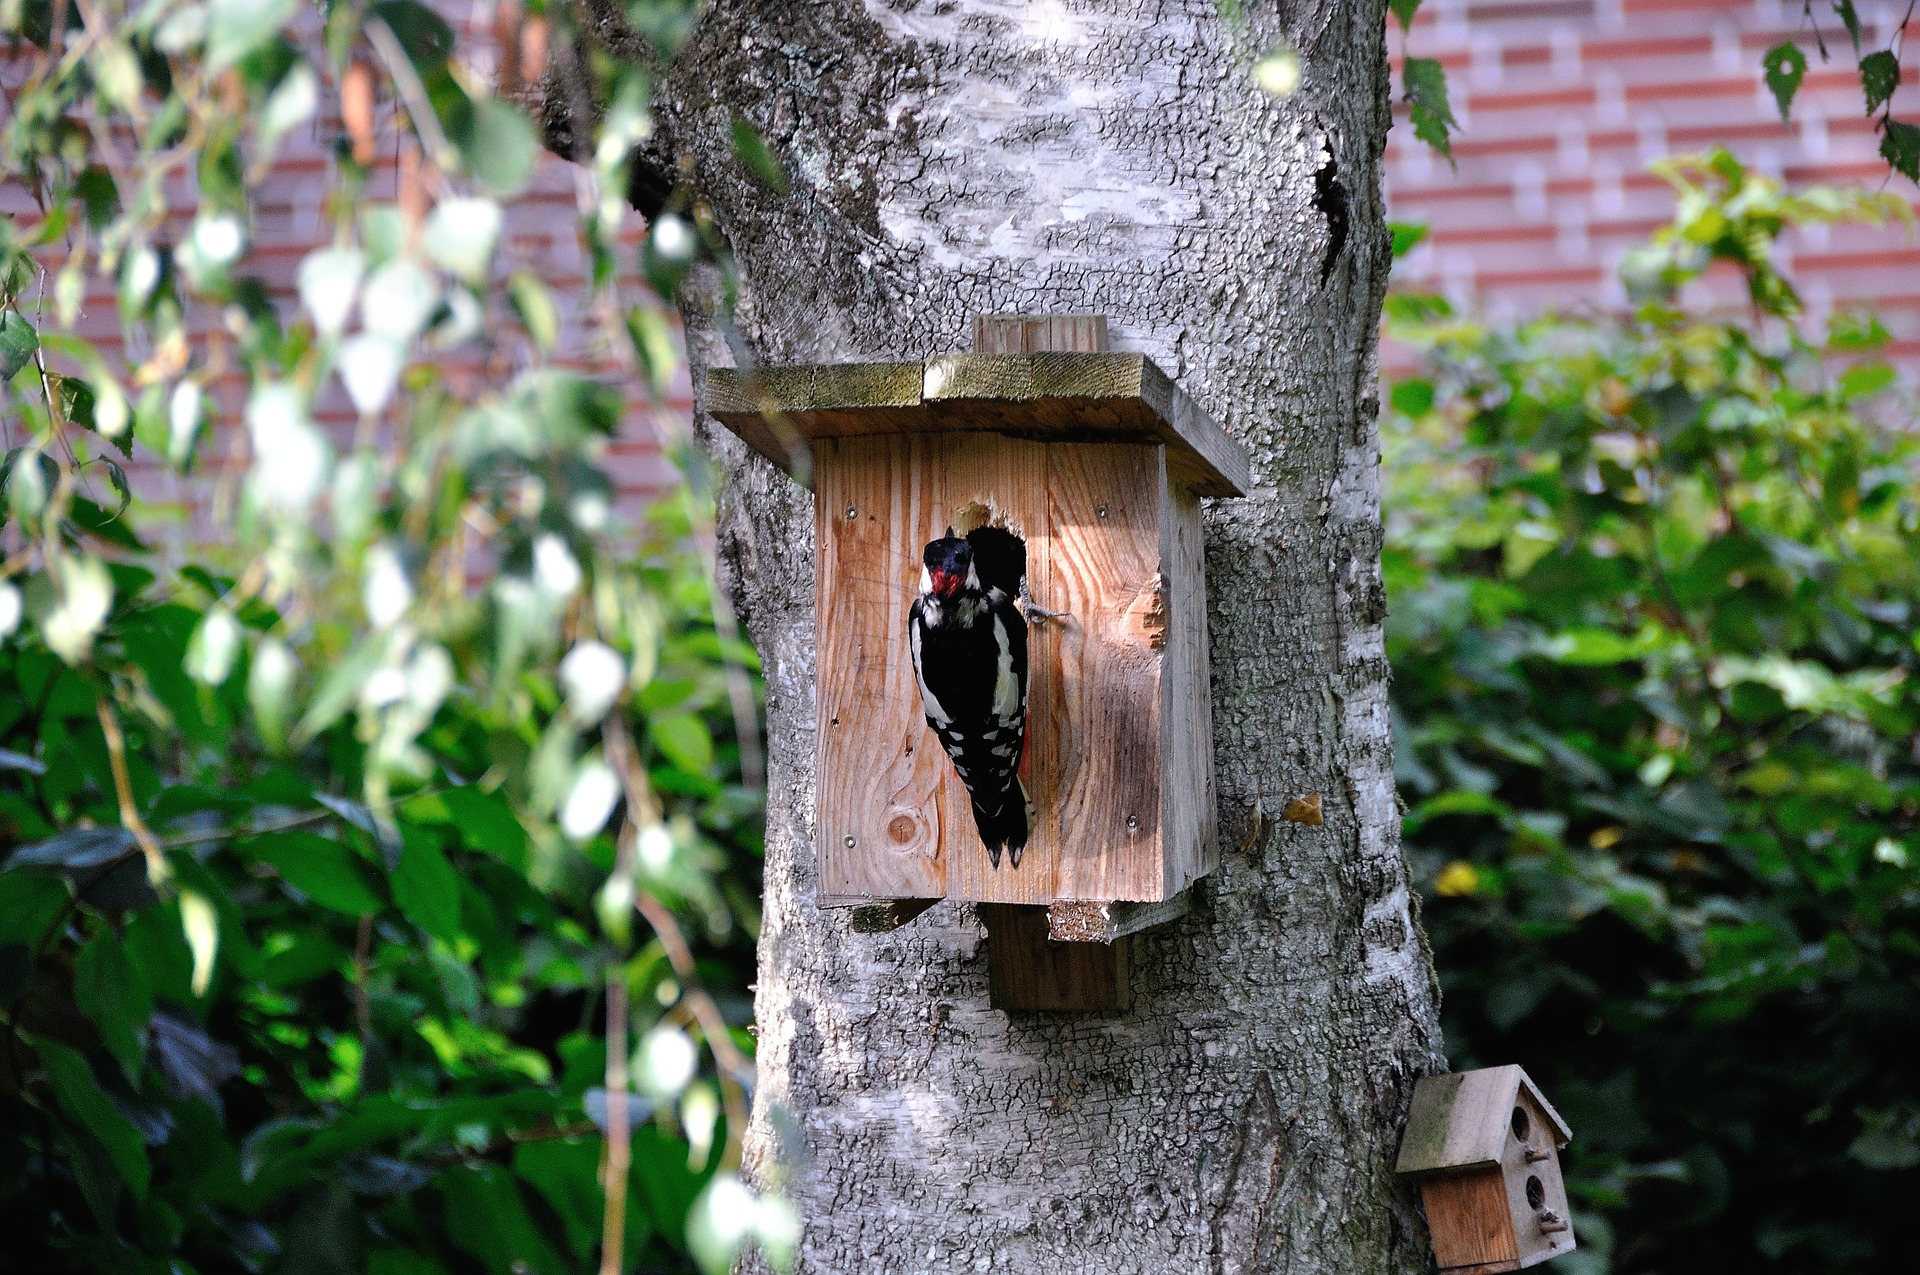 woodpecker at nesting box - why do woodpeckers peck